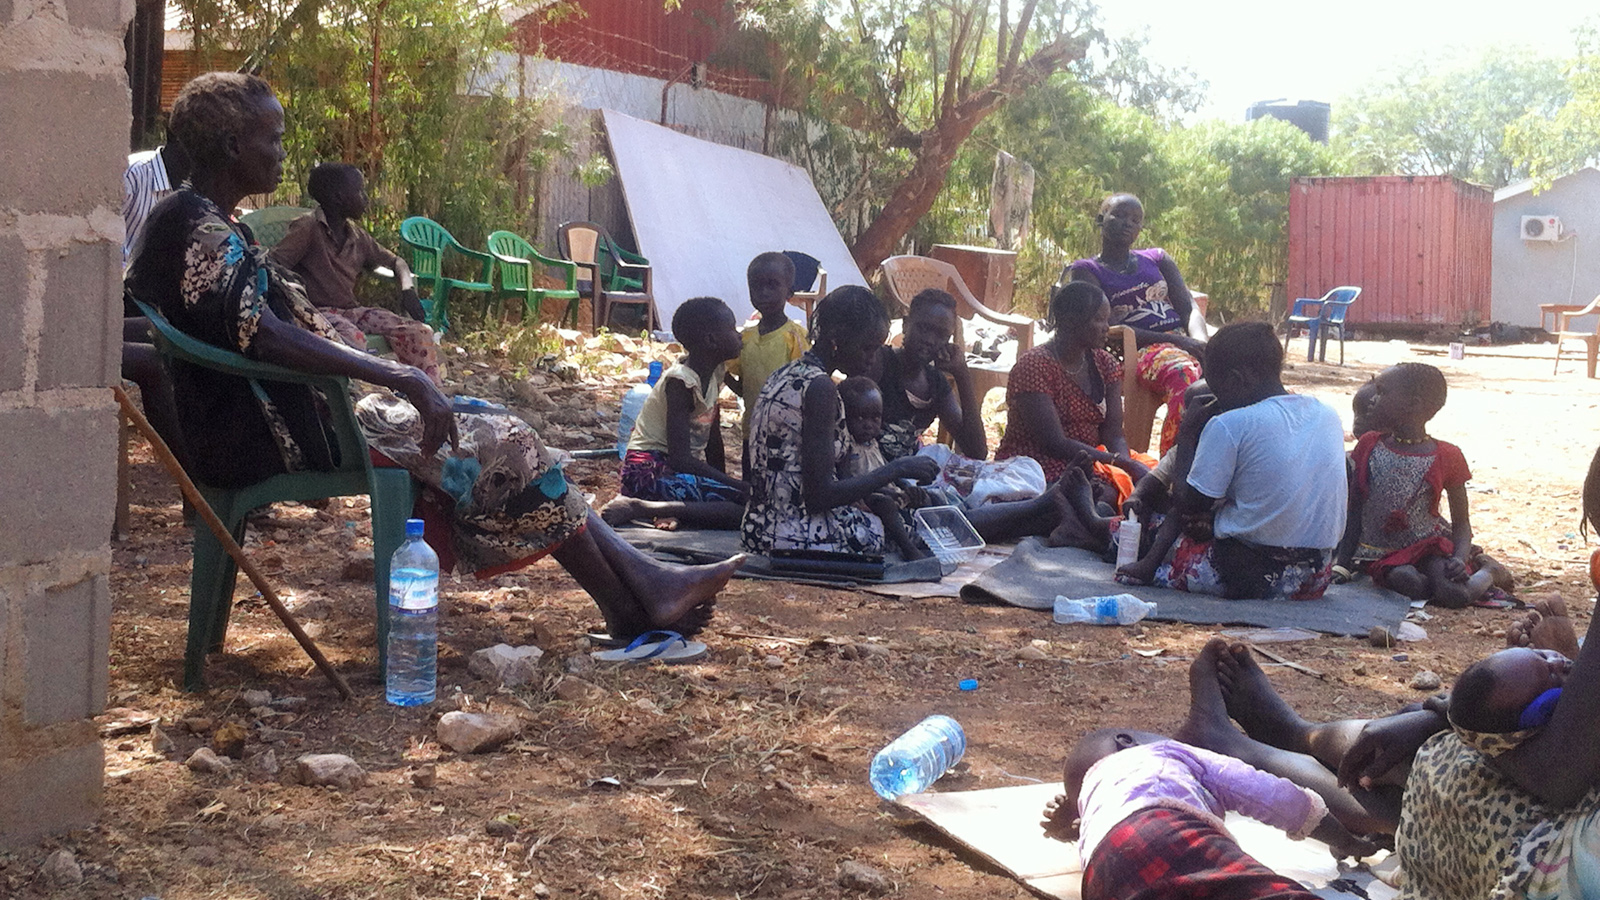 Internally displaced people at the Episcopal Cathedral in Juba